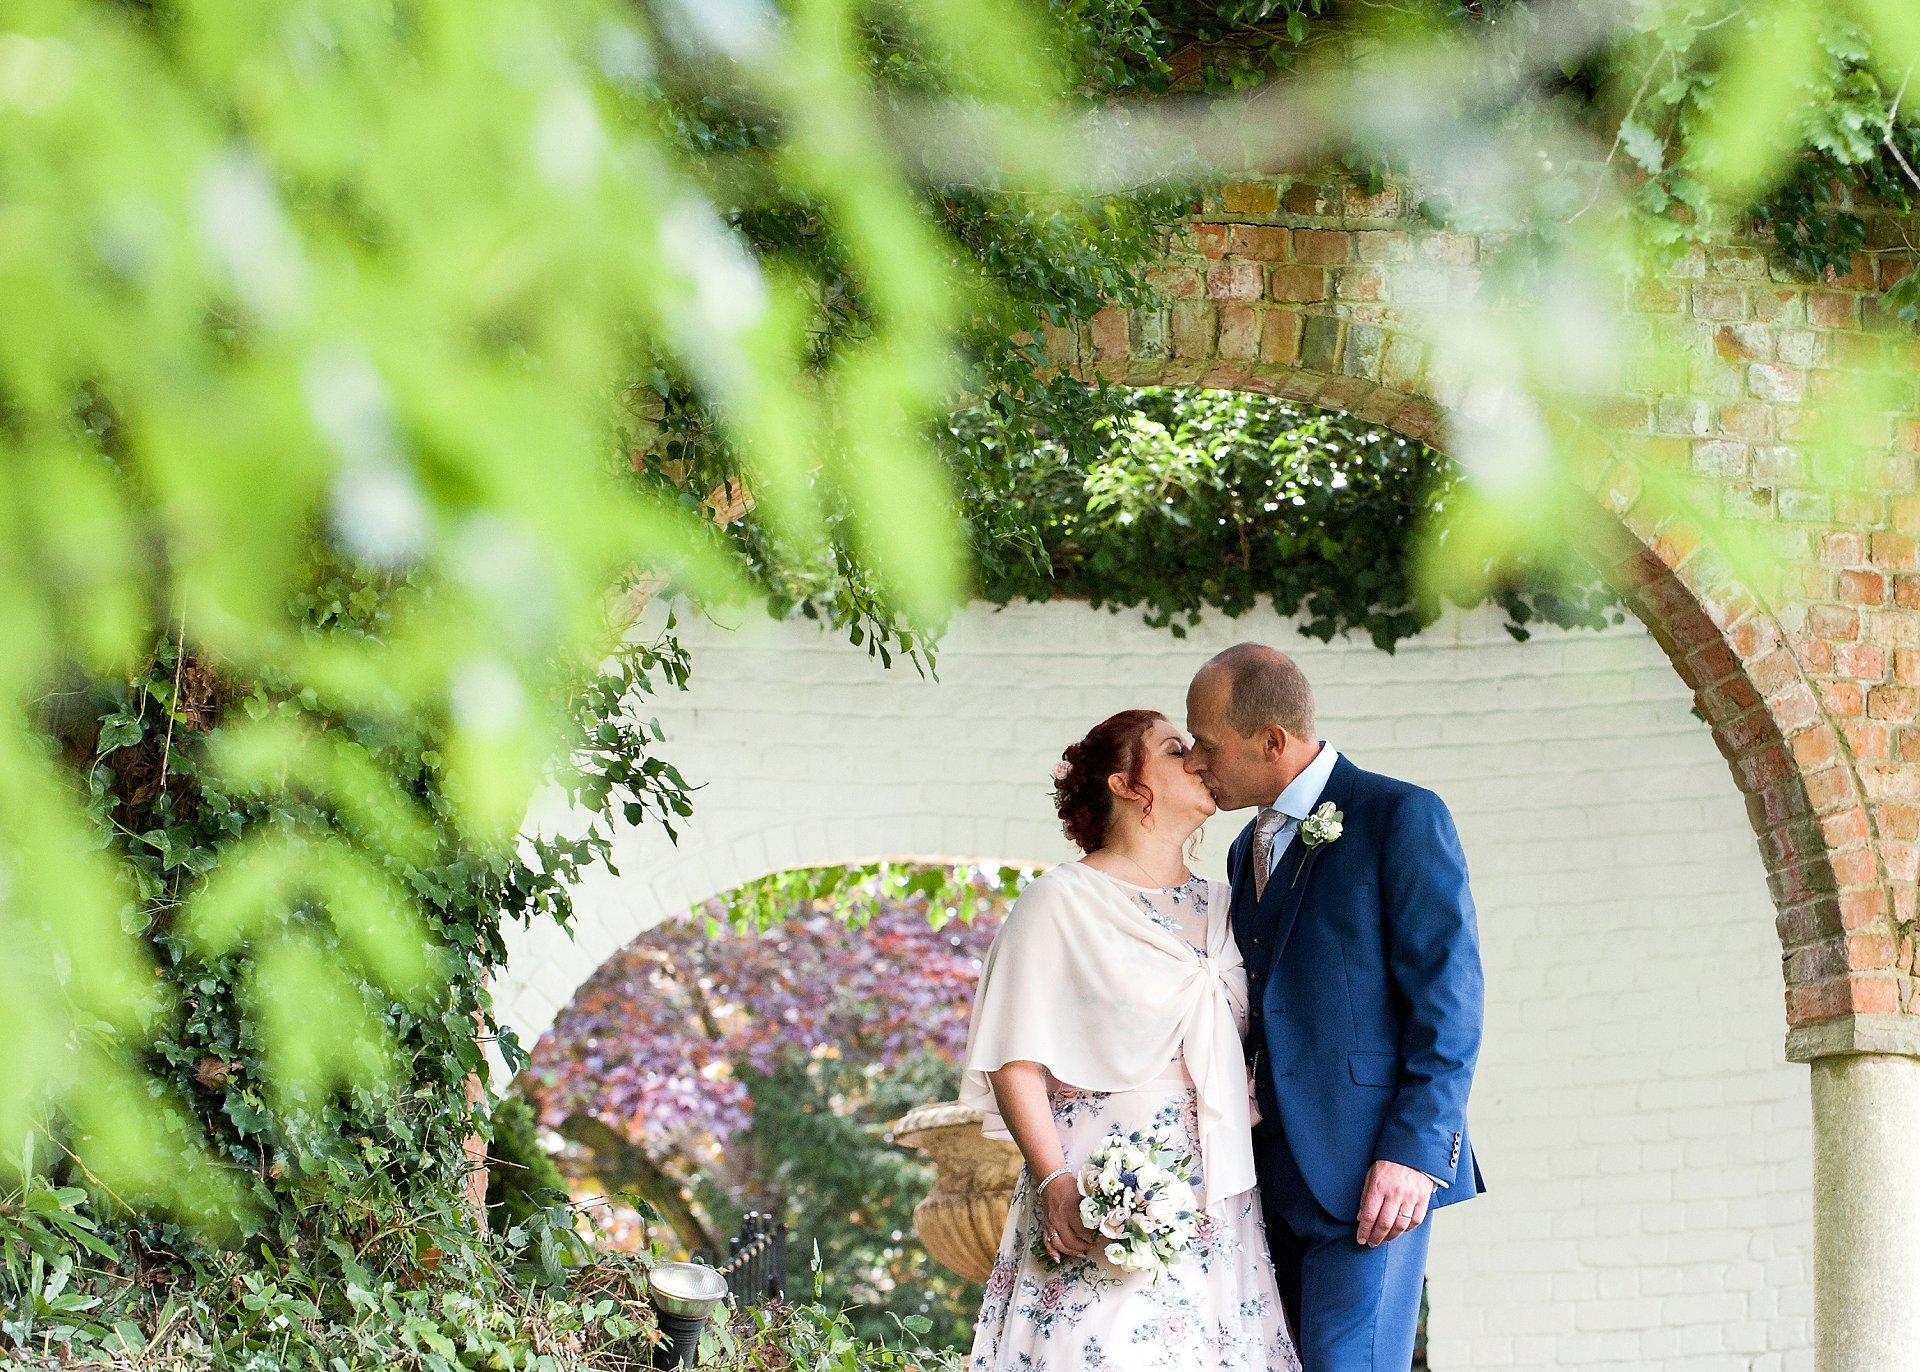 Horsham wedding venue Ghyll Manor is a stunnng 17th century country house venue perfect for weddings both large and small and here the bride and groom kiss tenderly just before their wedding breakfast